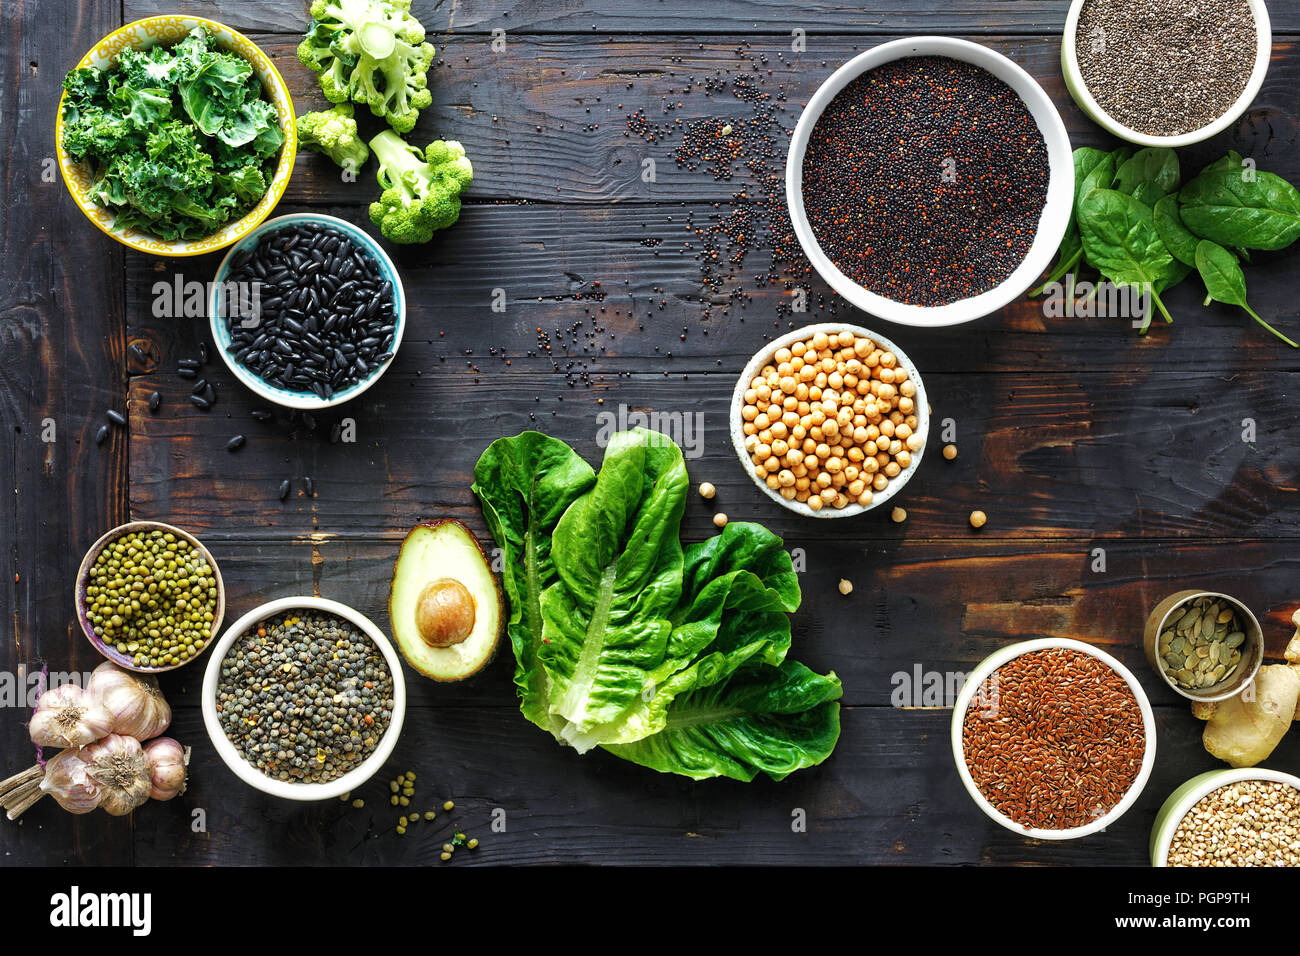 Raw seeds, cereals, beans, superfoods and green vegetables on dark wooden table top view. vegetarian or diet food concept - Stock Image